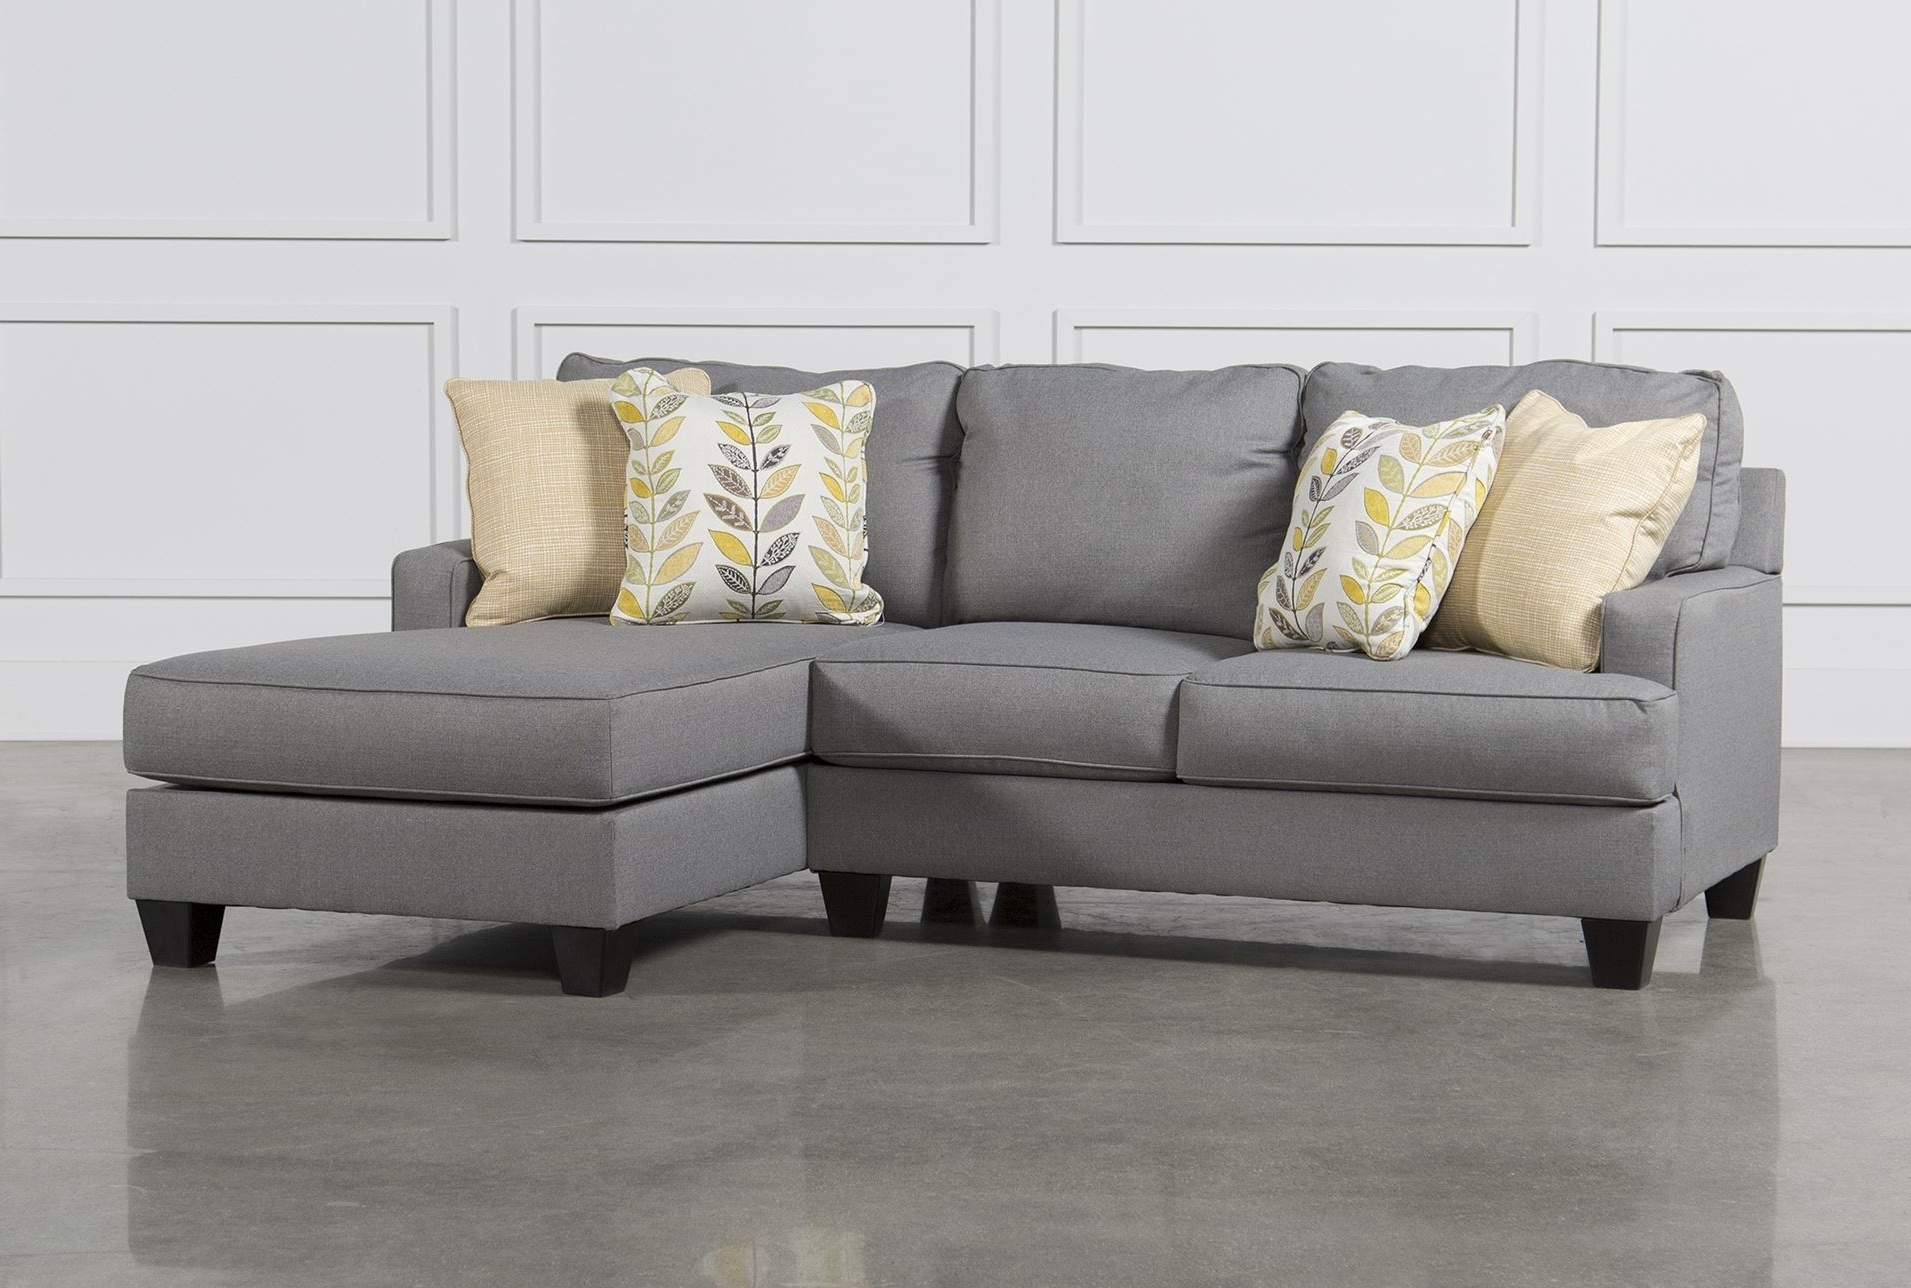 Well Known 2 Piece Sectional Sofas With Chaise Within Chamberly 2 Piece Sectional W/raf Chaise – Signature (View 15 of 15)